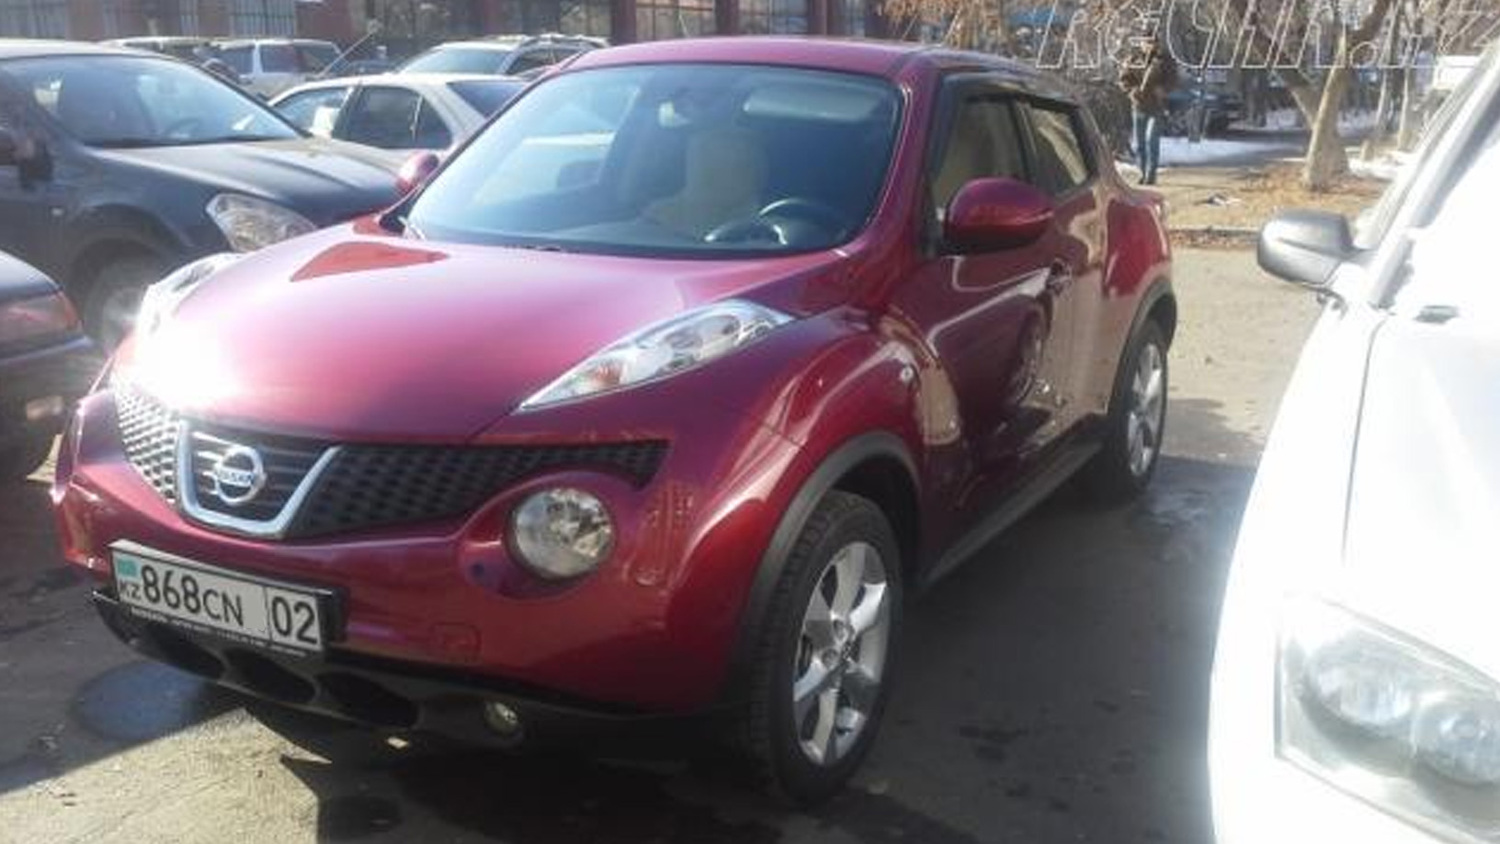 "<span style=""font-weight: bold;"">Nissan Juke</span>"